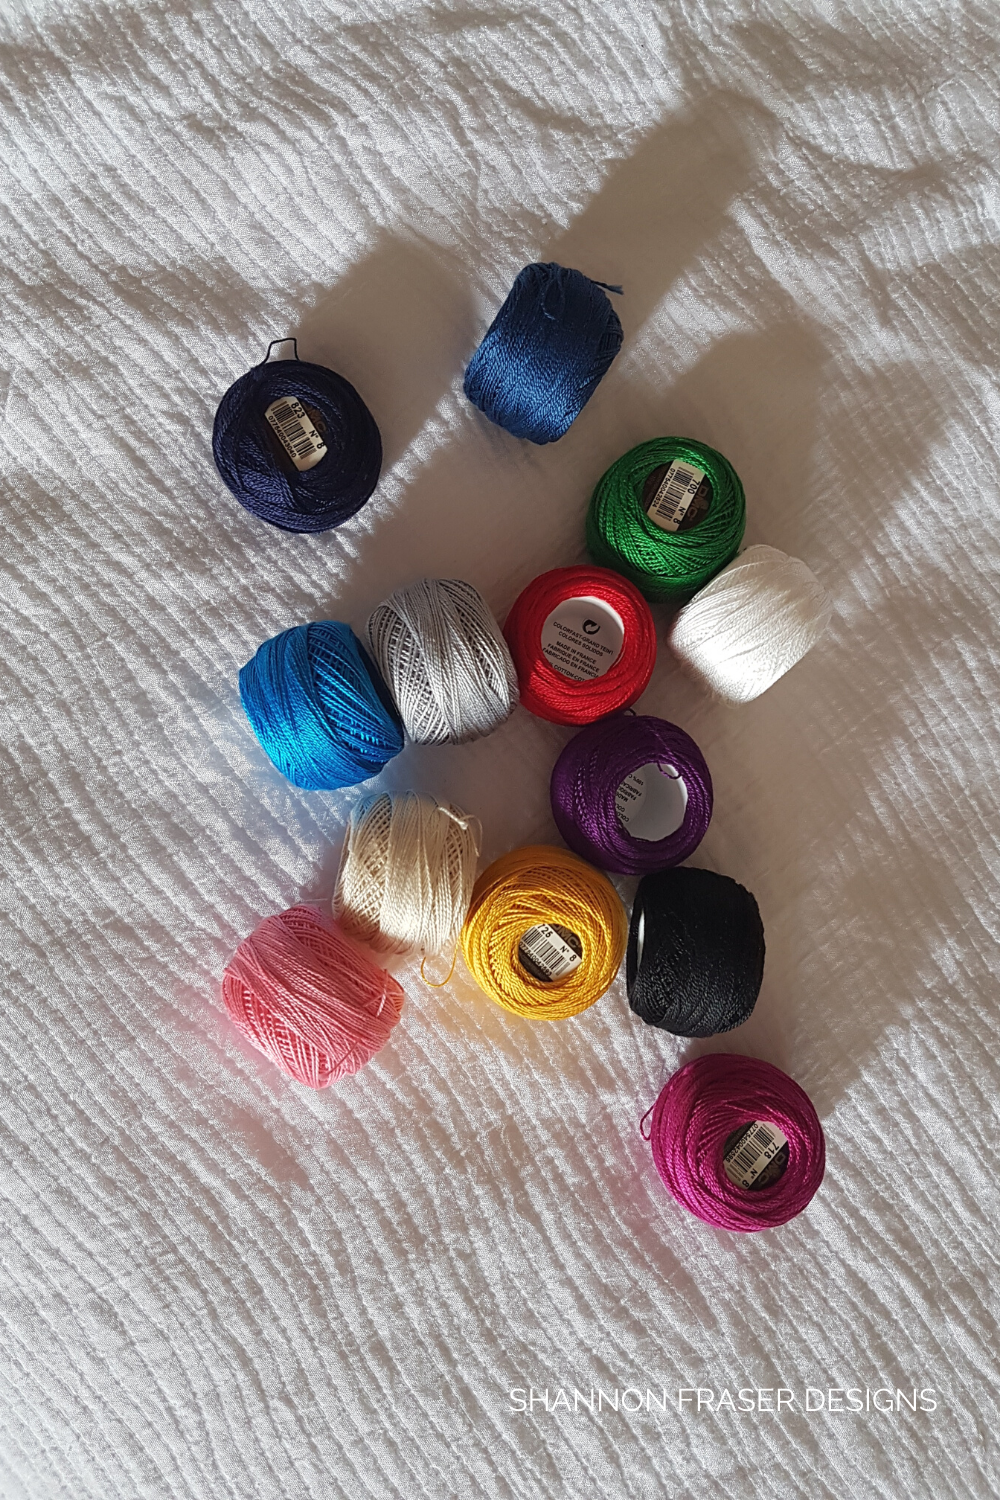 DMC Pearl cotton thread spools on a bed | Shopping Guide for Perle Cotton Thread | Shannon Fraser Designs #notions